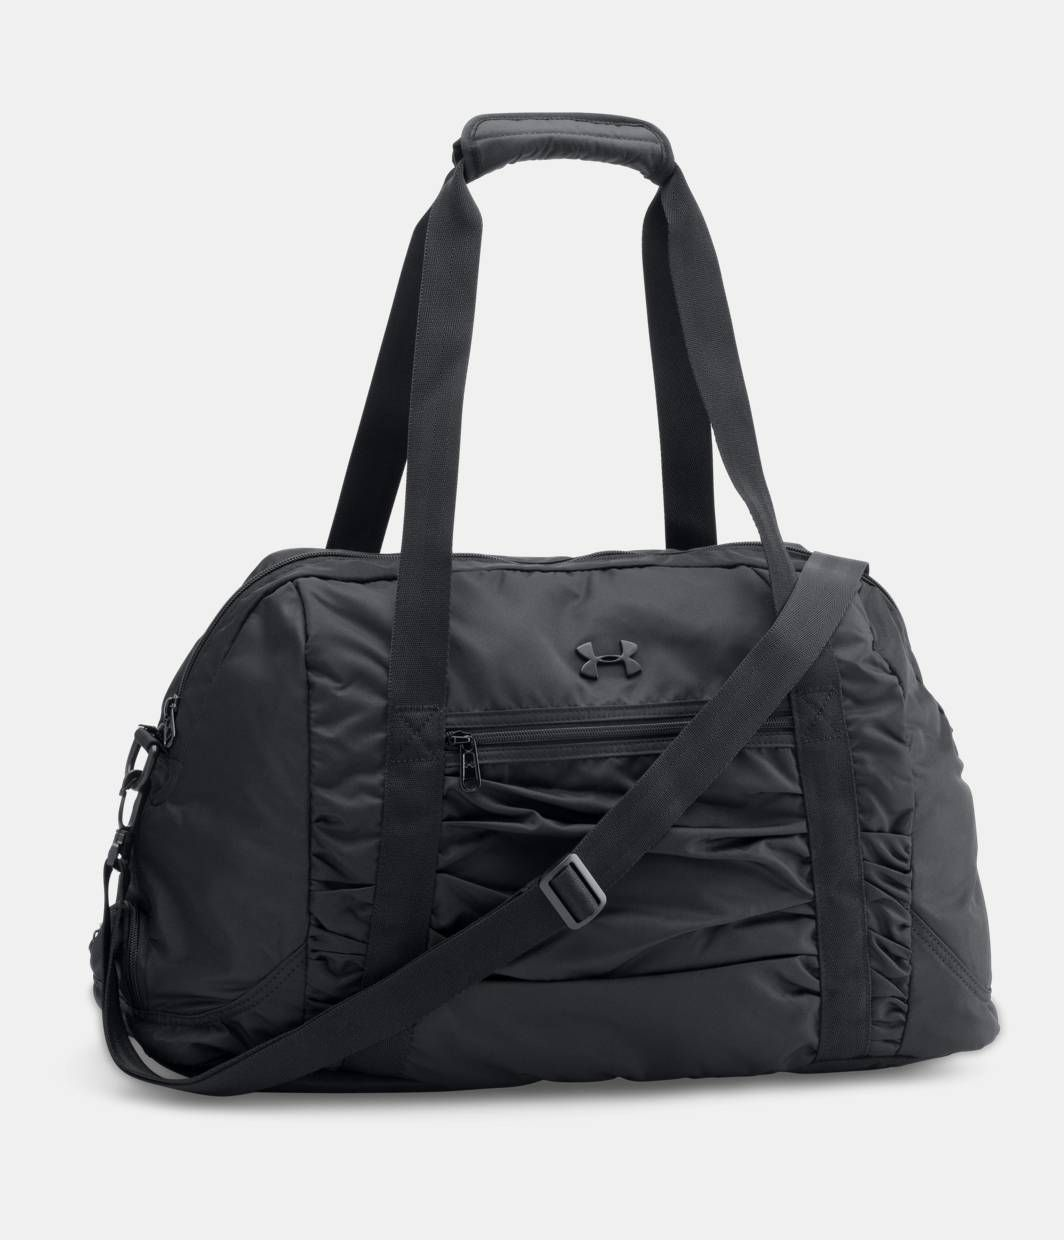 e82dc5704838 Buy gym bags for women   OFF57% Discounted